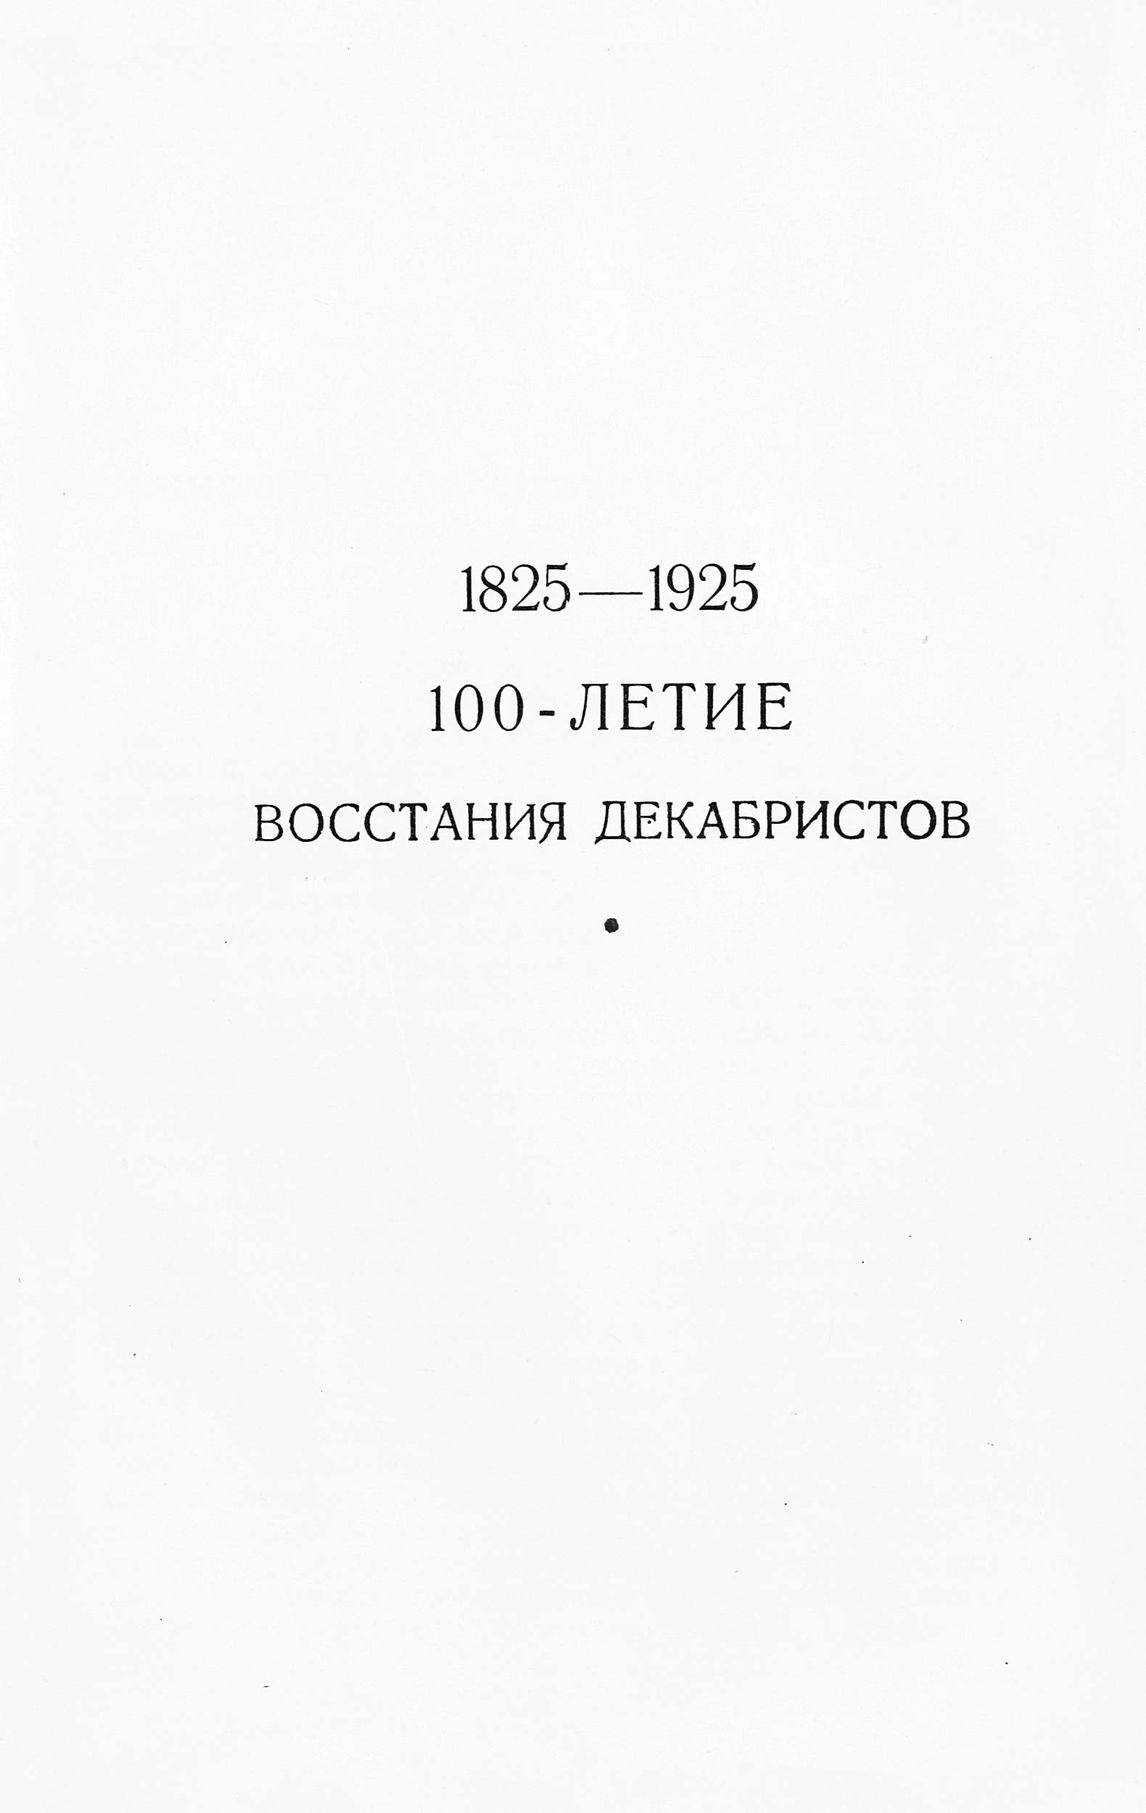 http://elib.shpl.ru/pages/543257/zooms/7